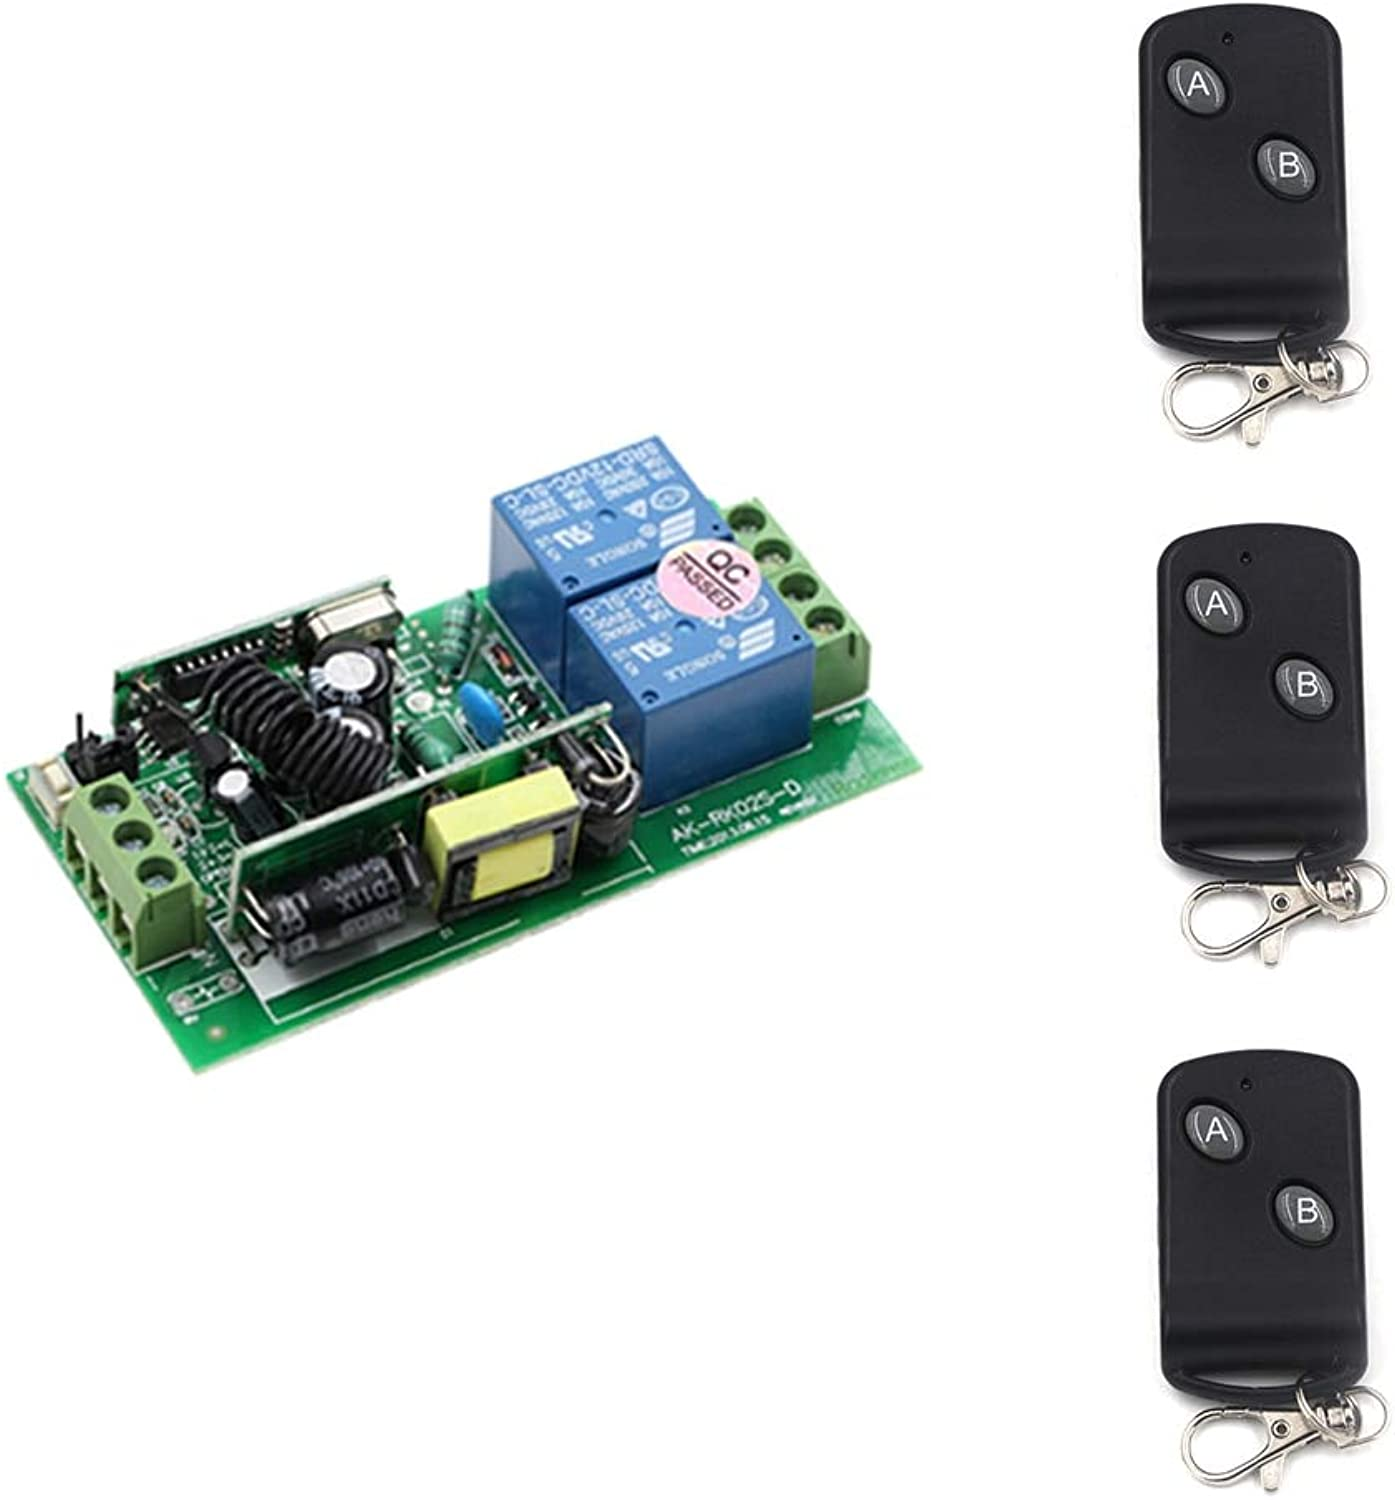 Hot Selling AC 85V 110V 220V 250 V 10A 2CH RF Wireless Remote Control Switch System Receiver Board and Transmitter New